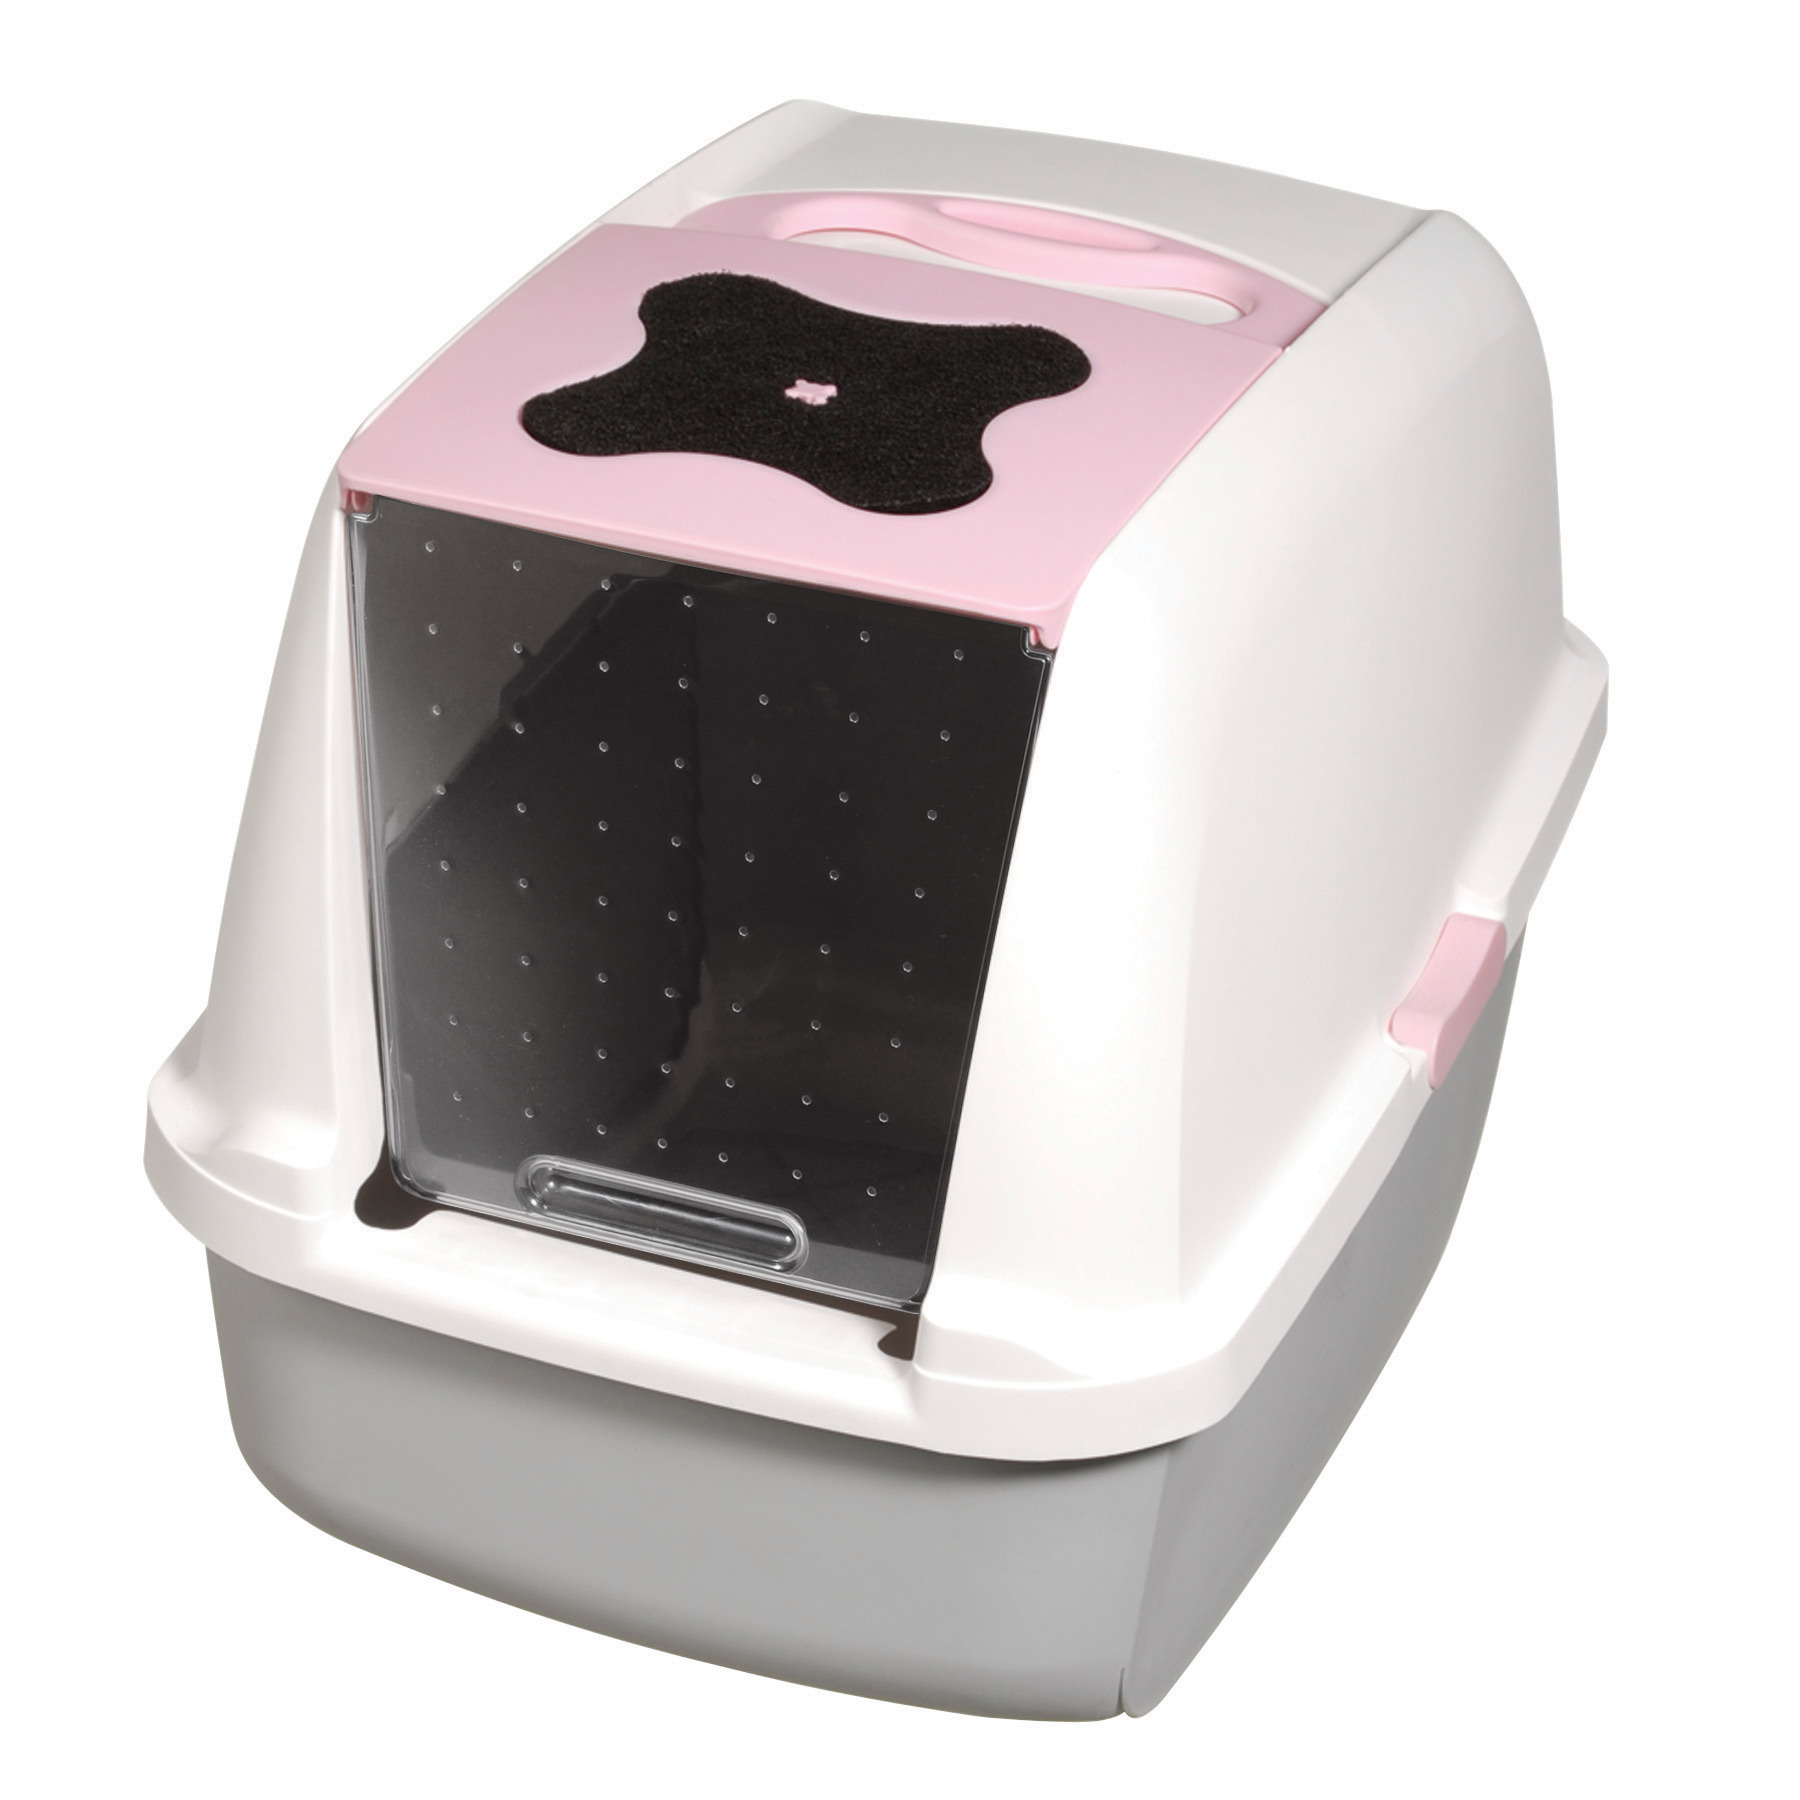 image covered cat litter. Catit, Covered Cat Litter Box, Pink Image Covered Cat Litter E